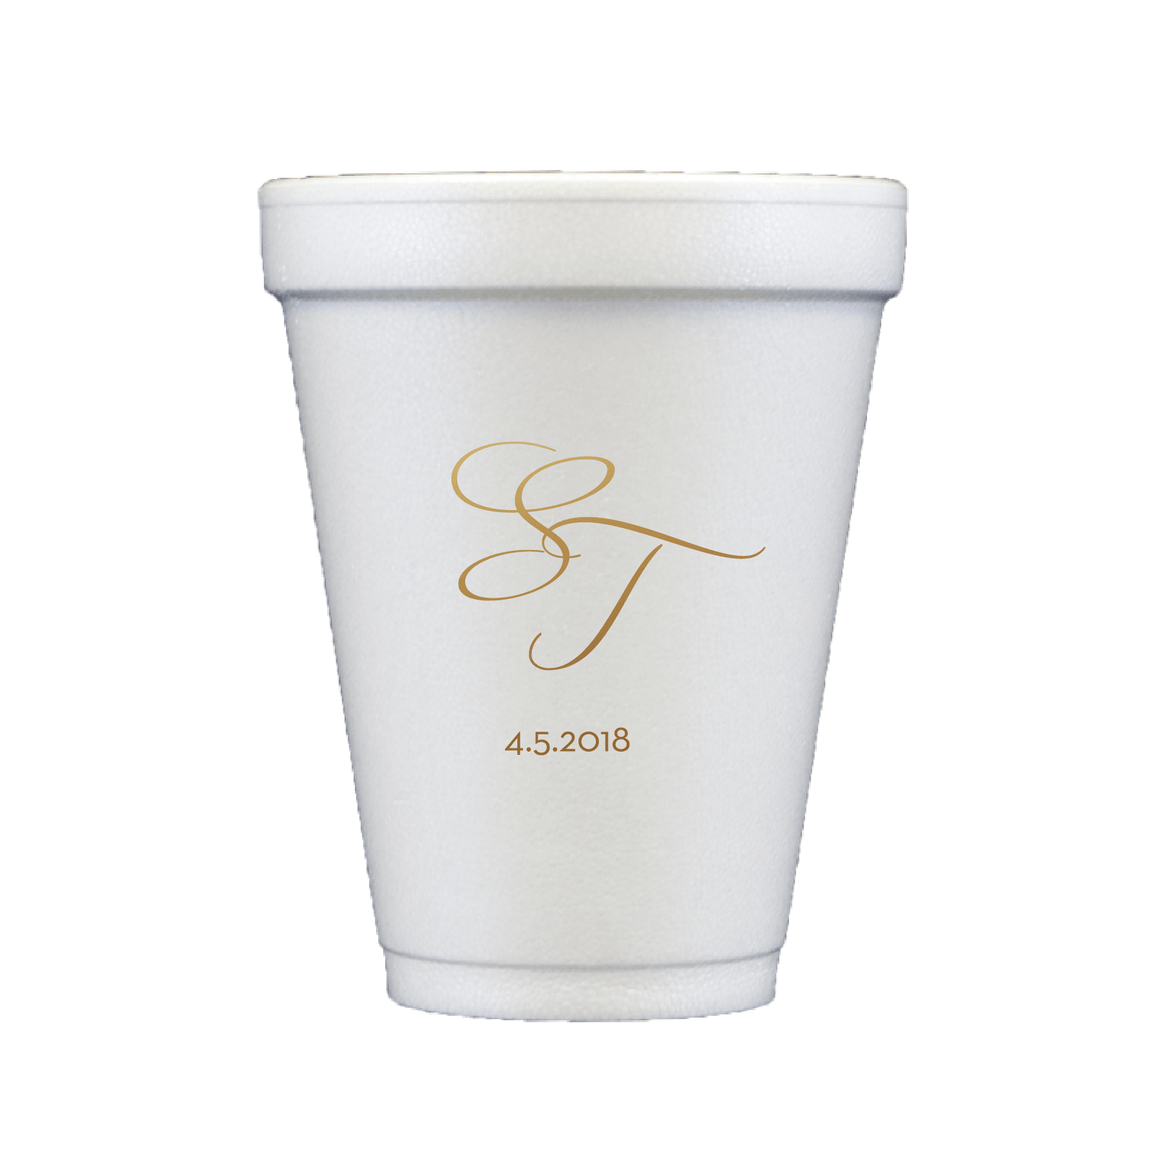 Personalized Wedding Cup - Personalized Foam Cups | Piper Wedding Collection